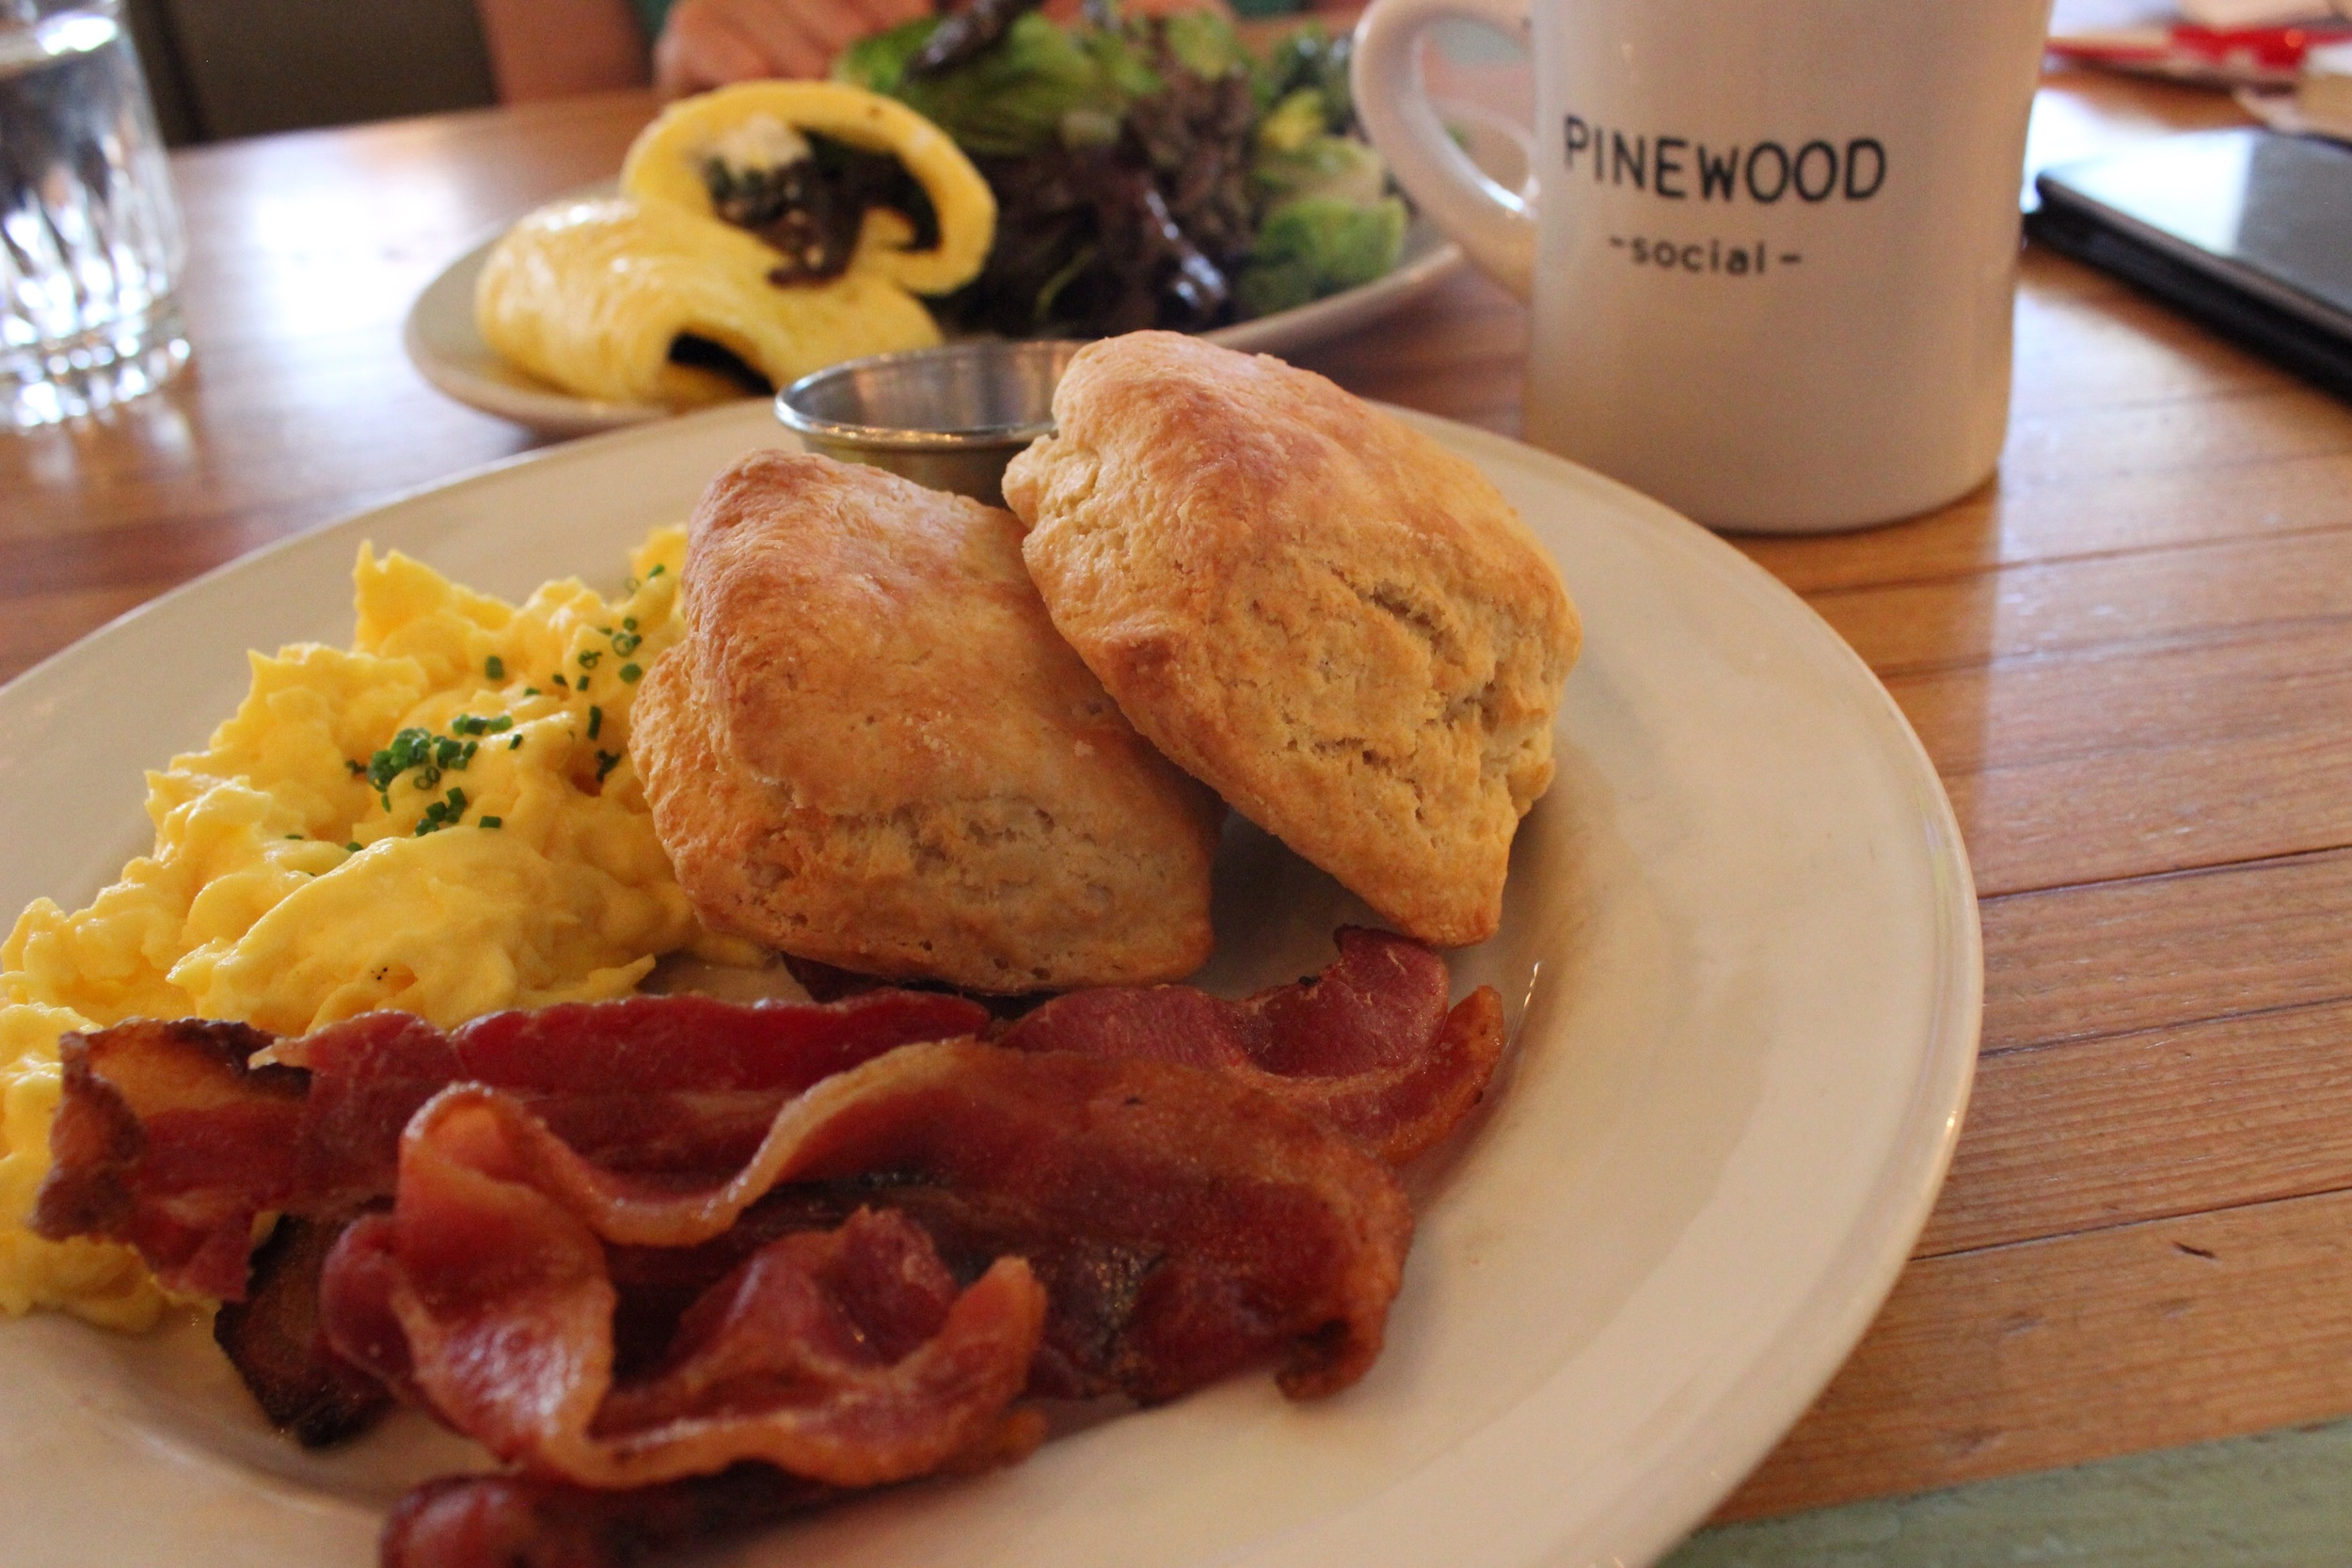 Went back for breakfast at pinewood social ... Biscuits and bacon .